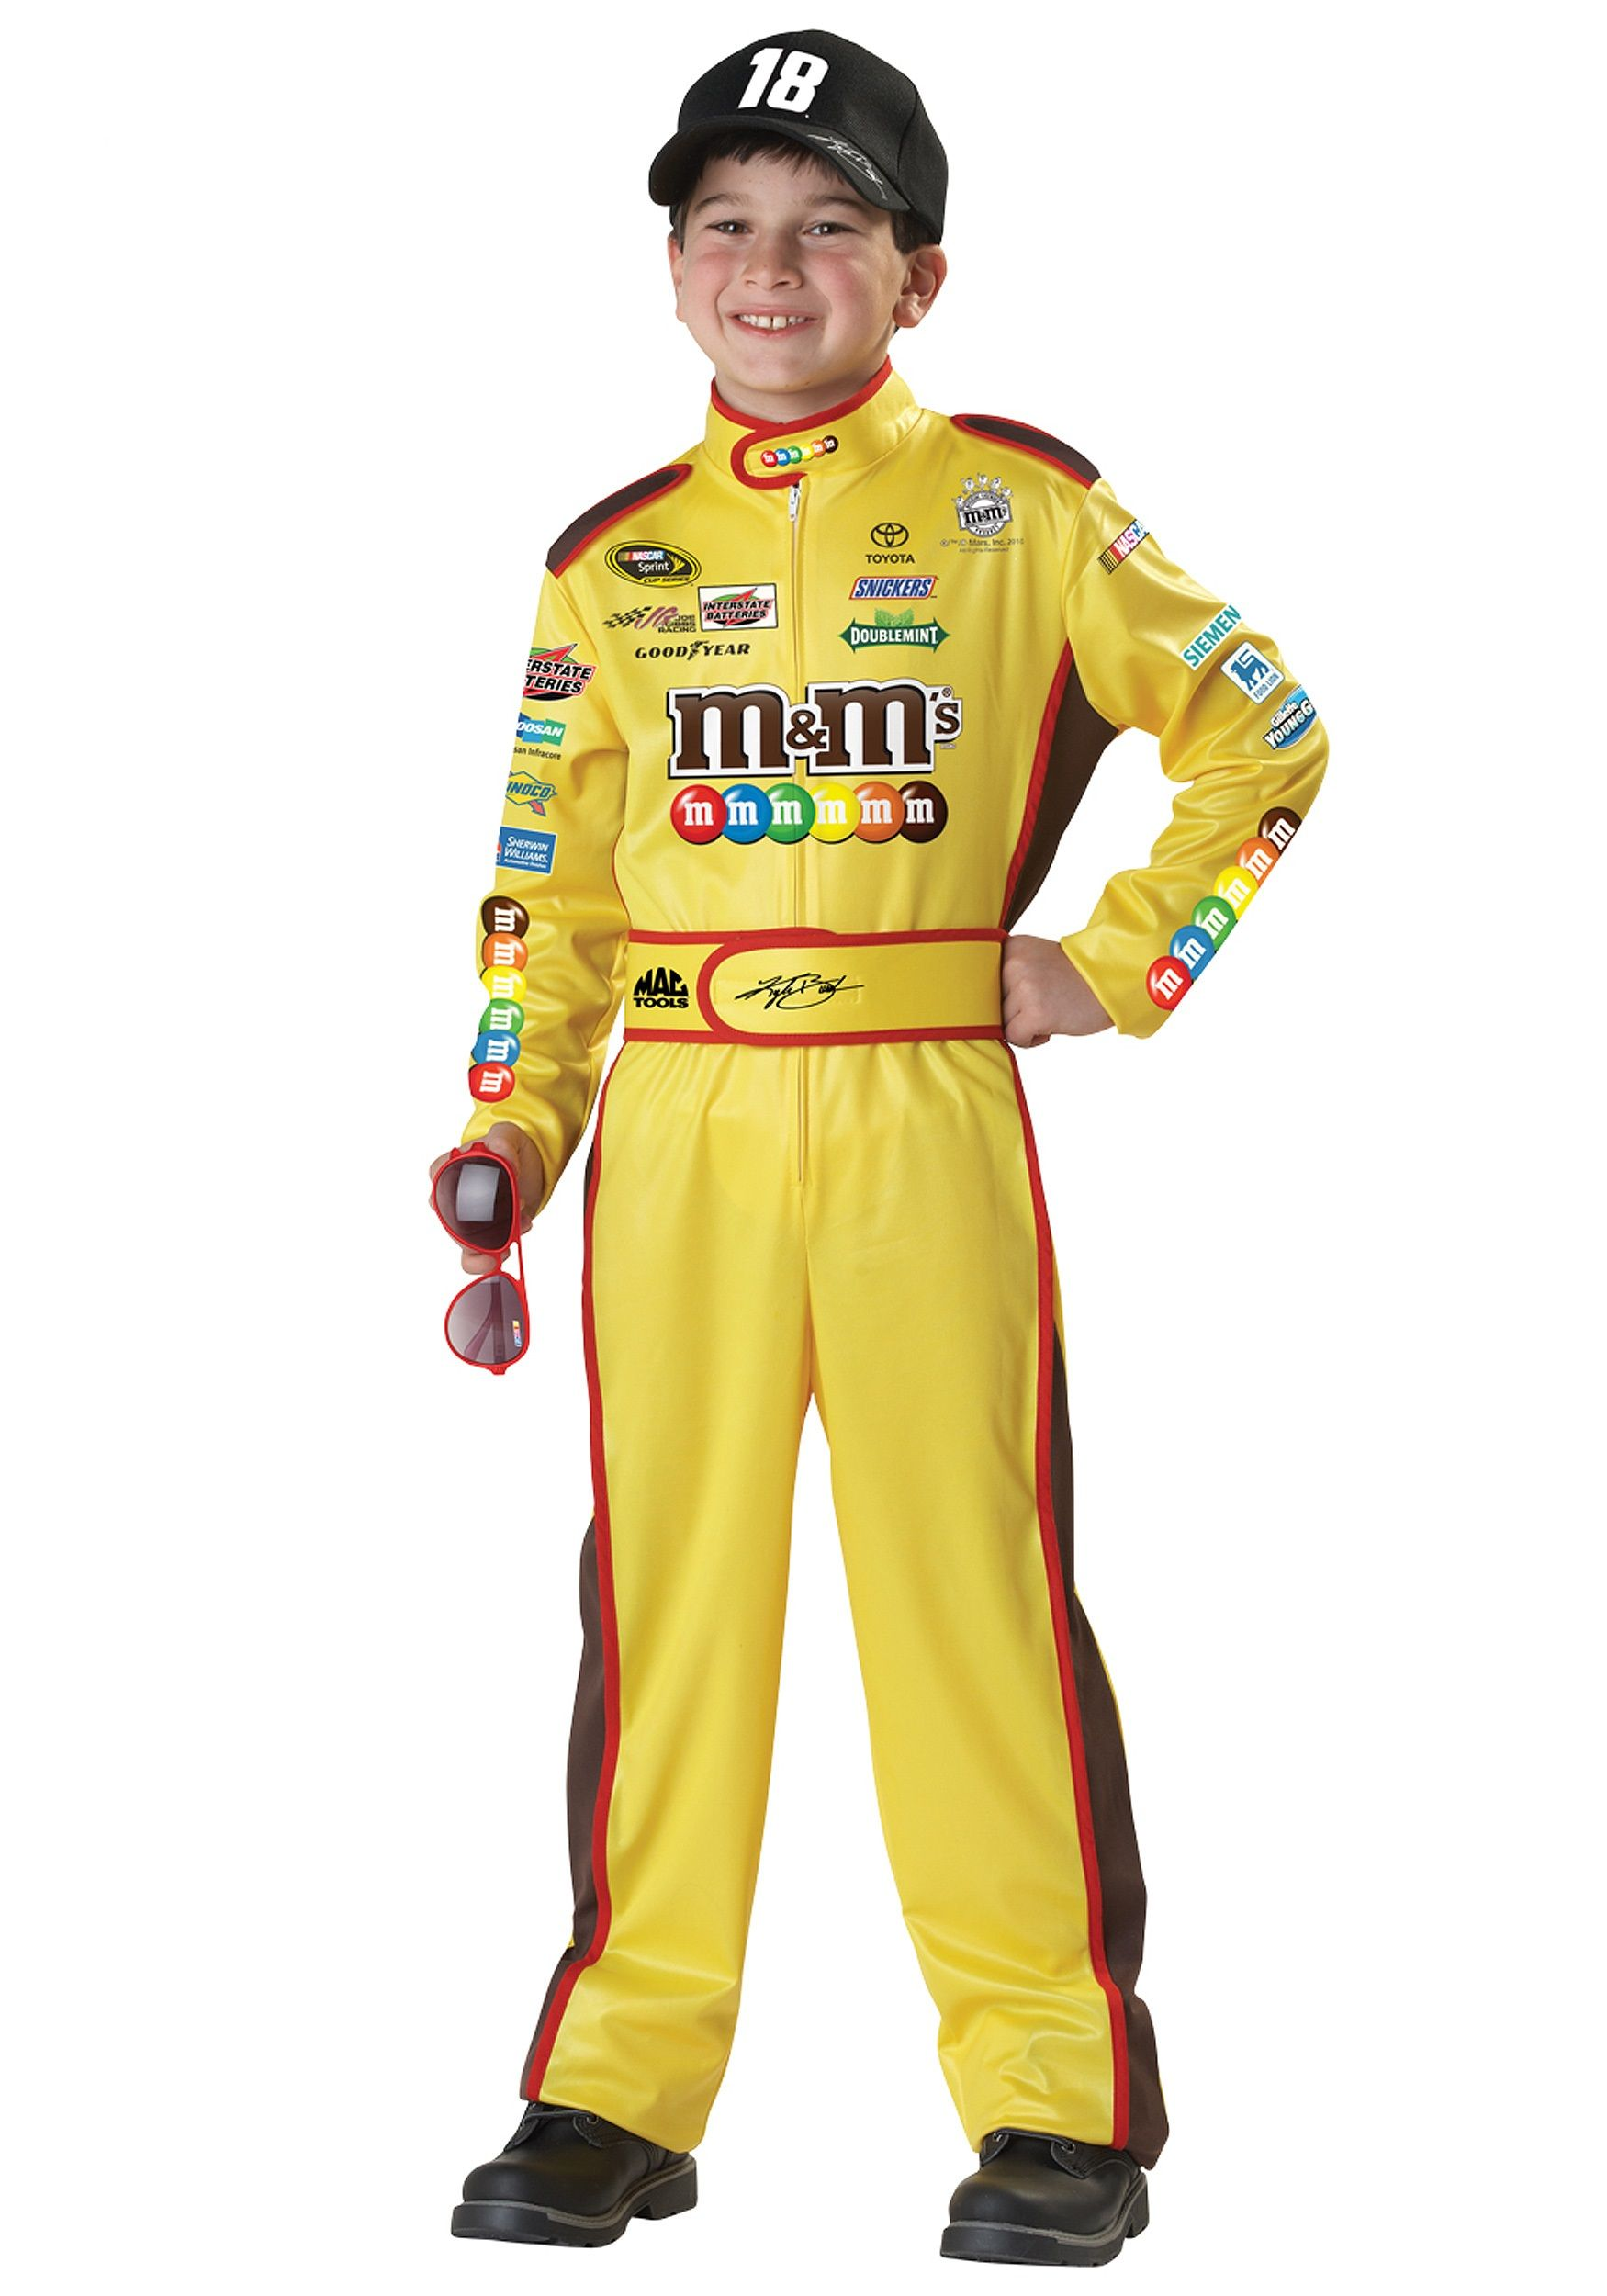 our kyle busch costume for kids will have everyone cheering for him to win the race